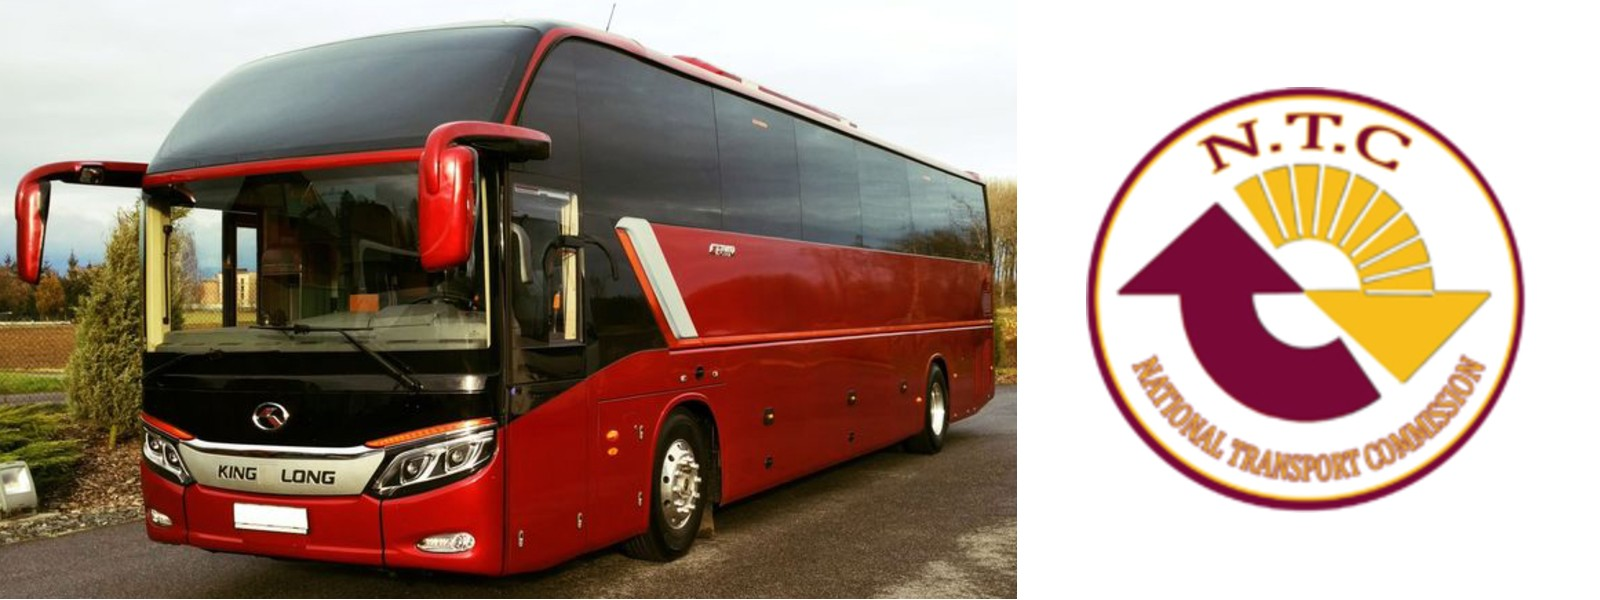 'Park and Ride' Luxury Bus service from today